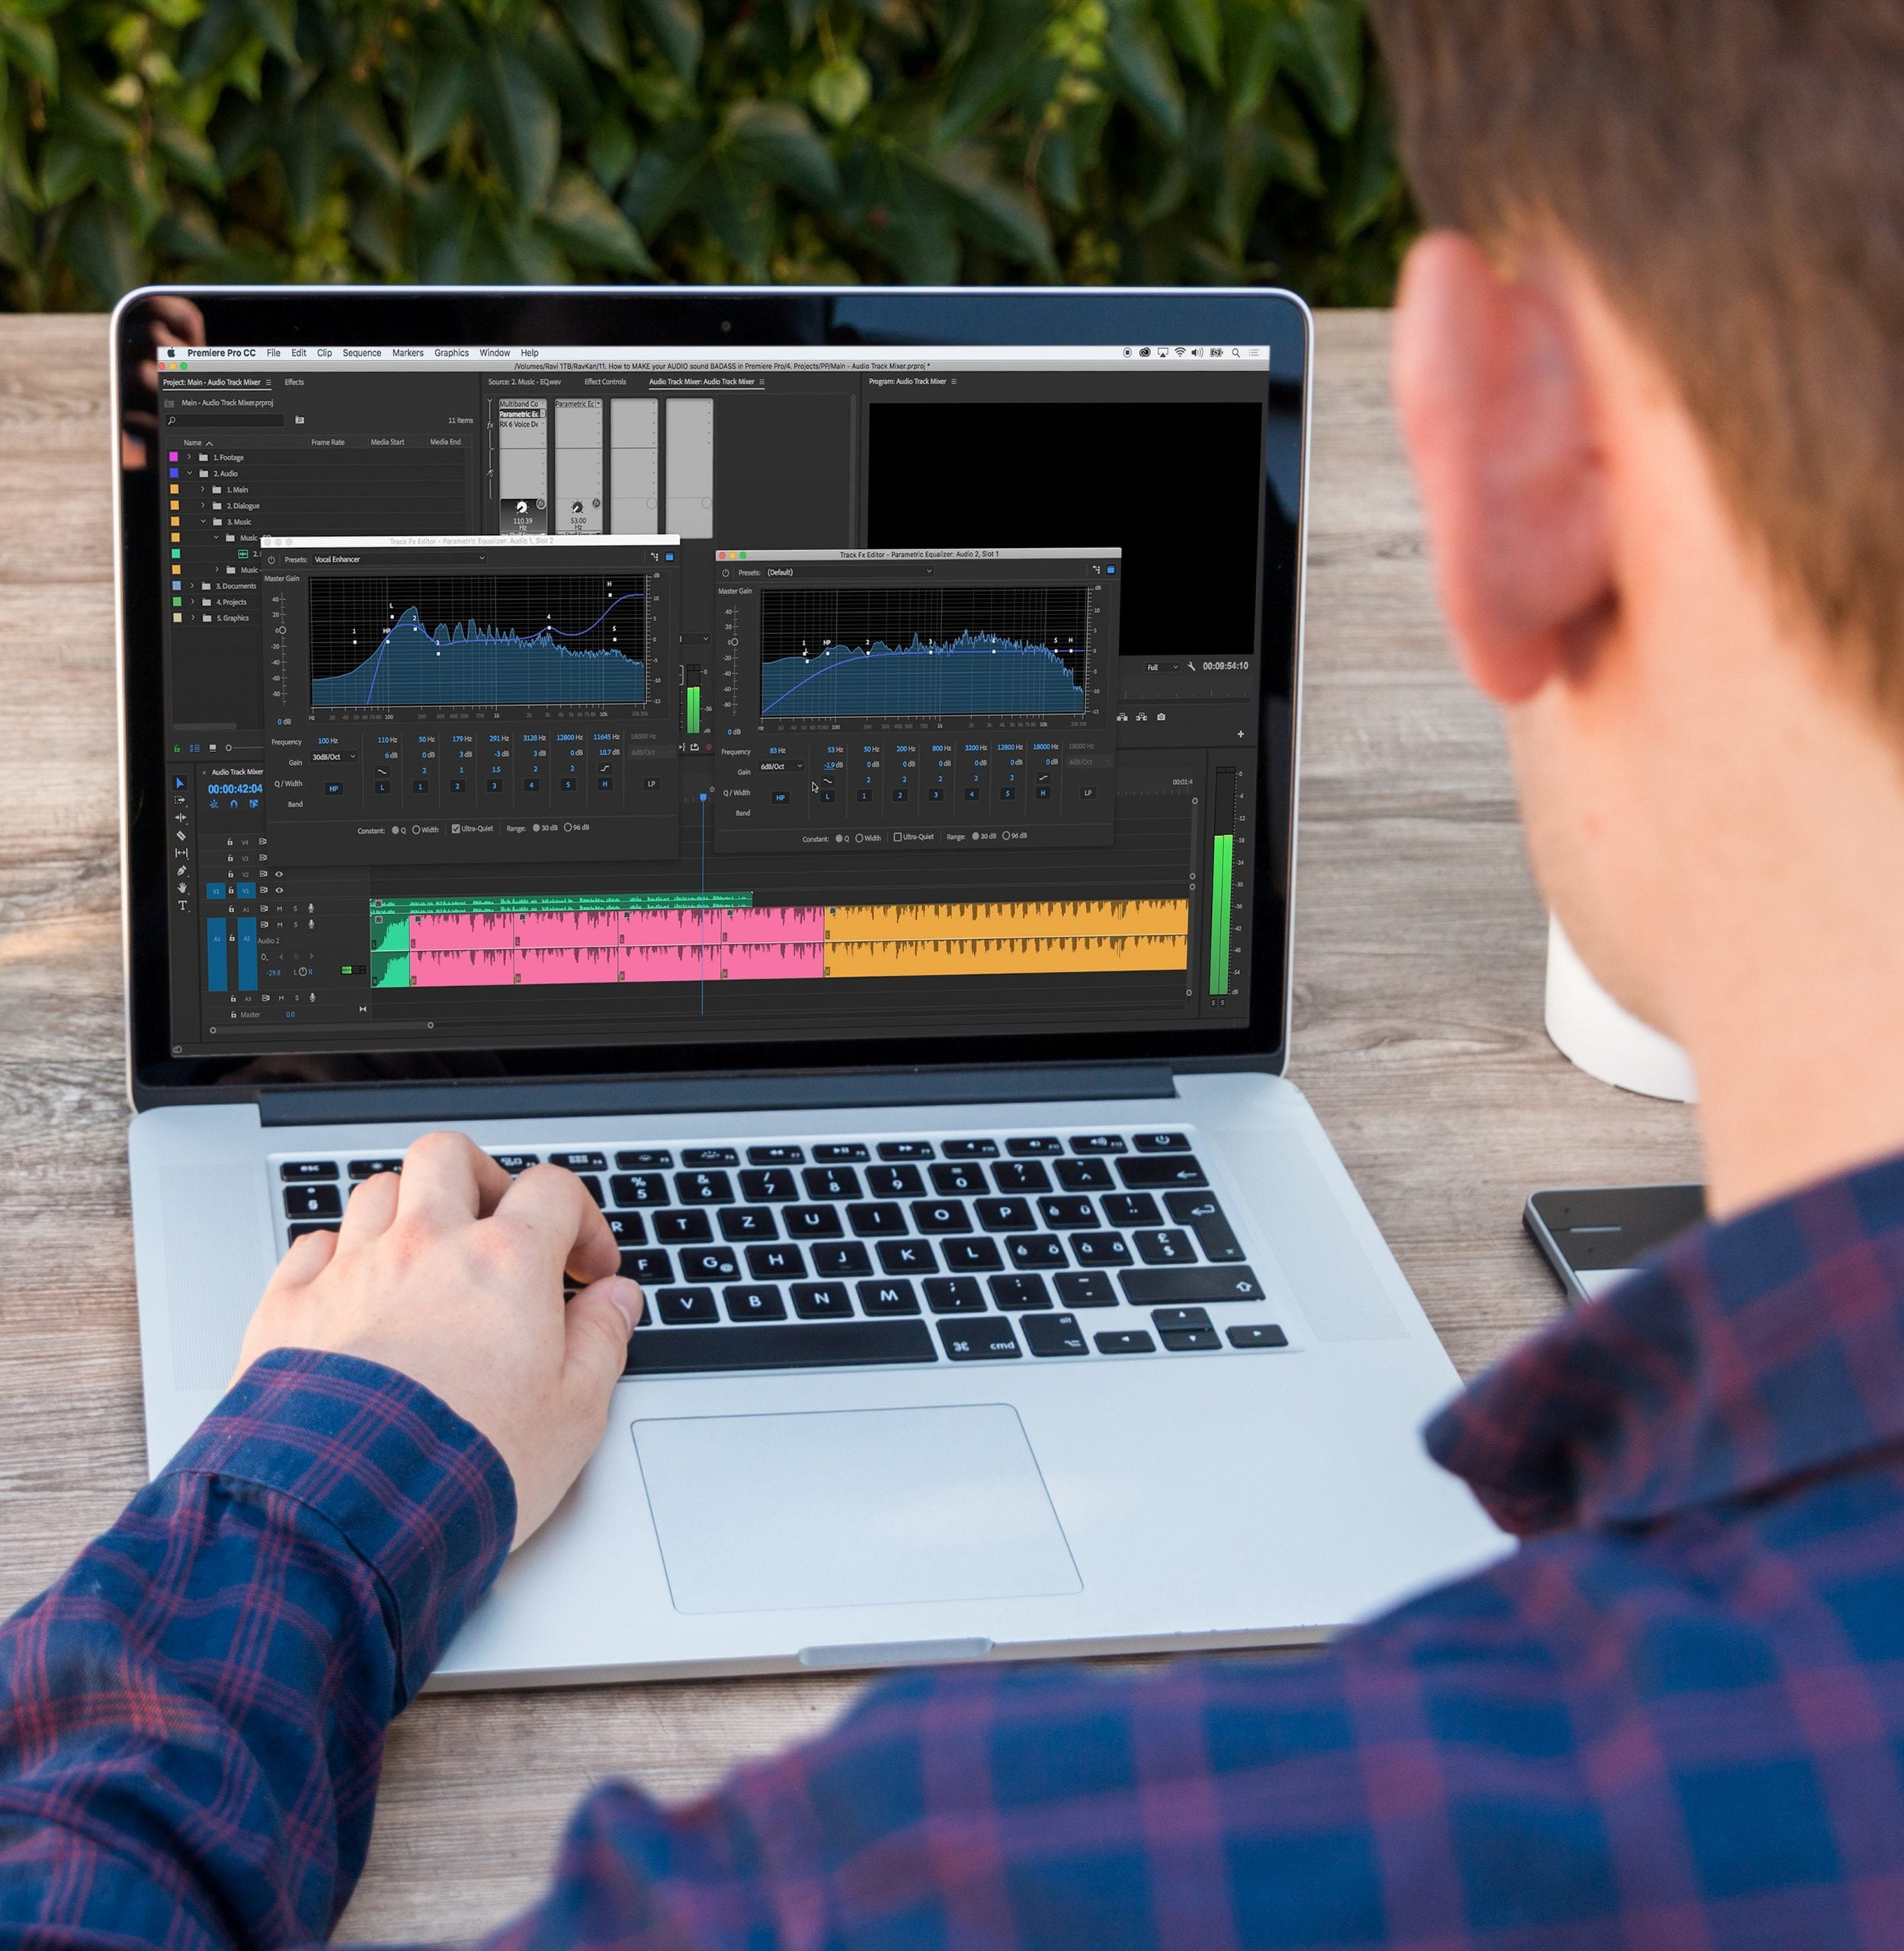 man-on-laptop-premiere-pro-audio